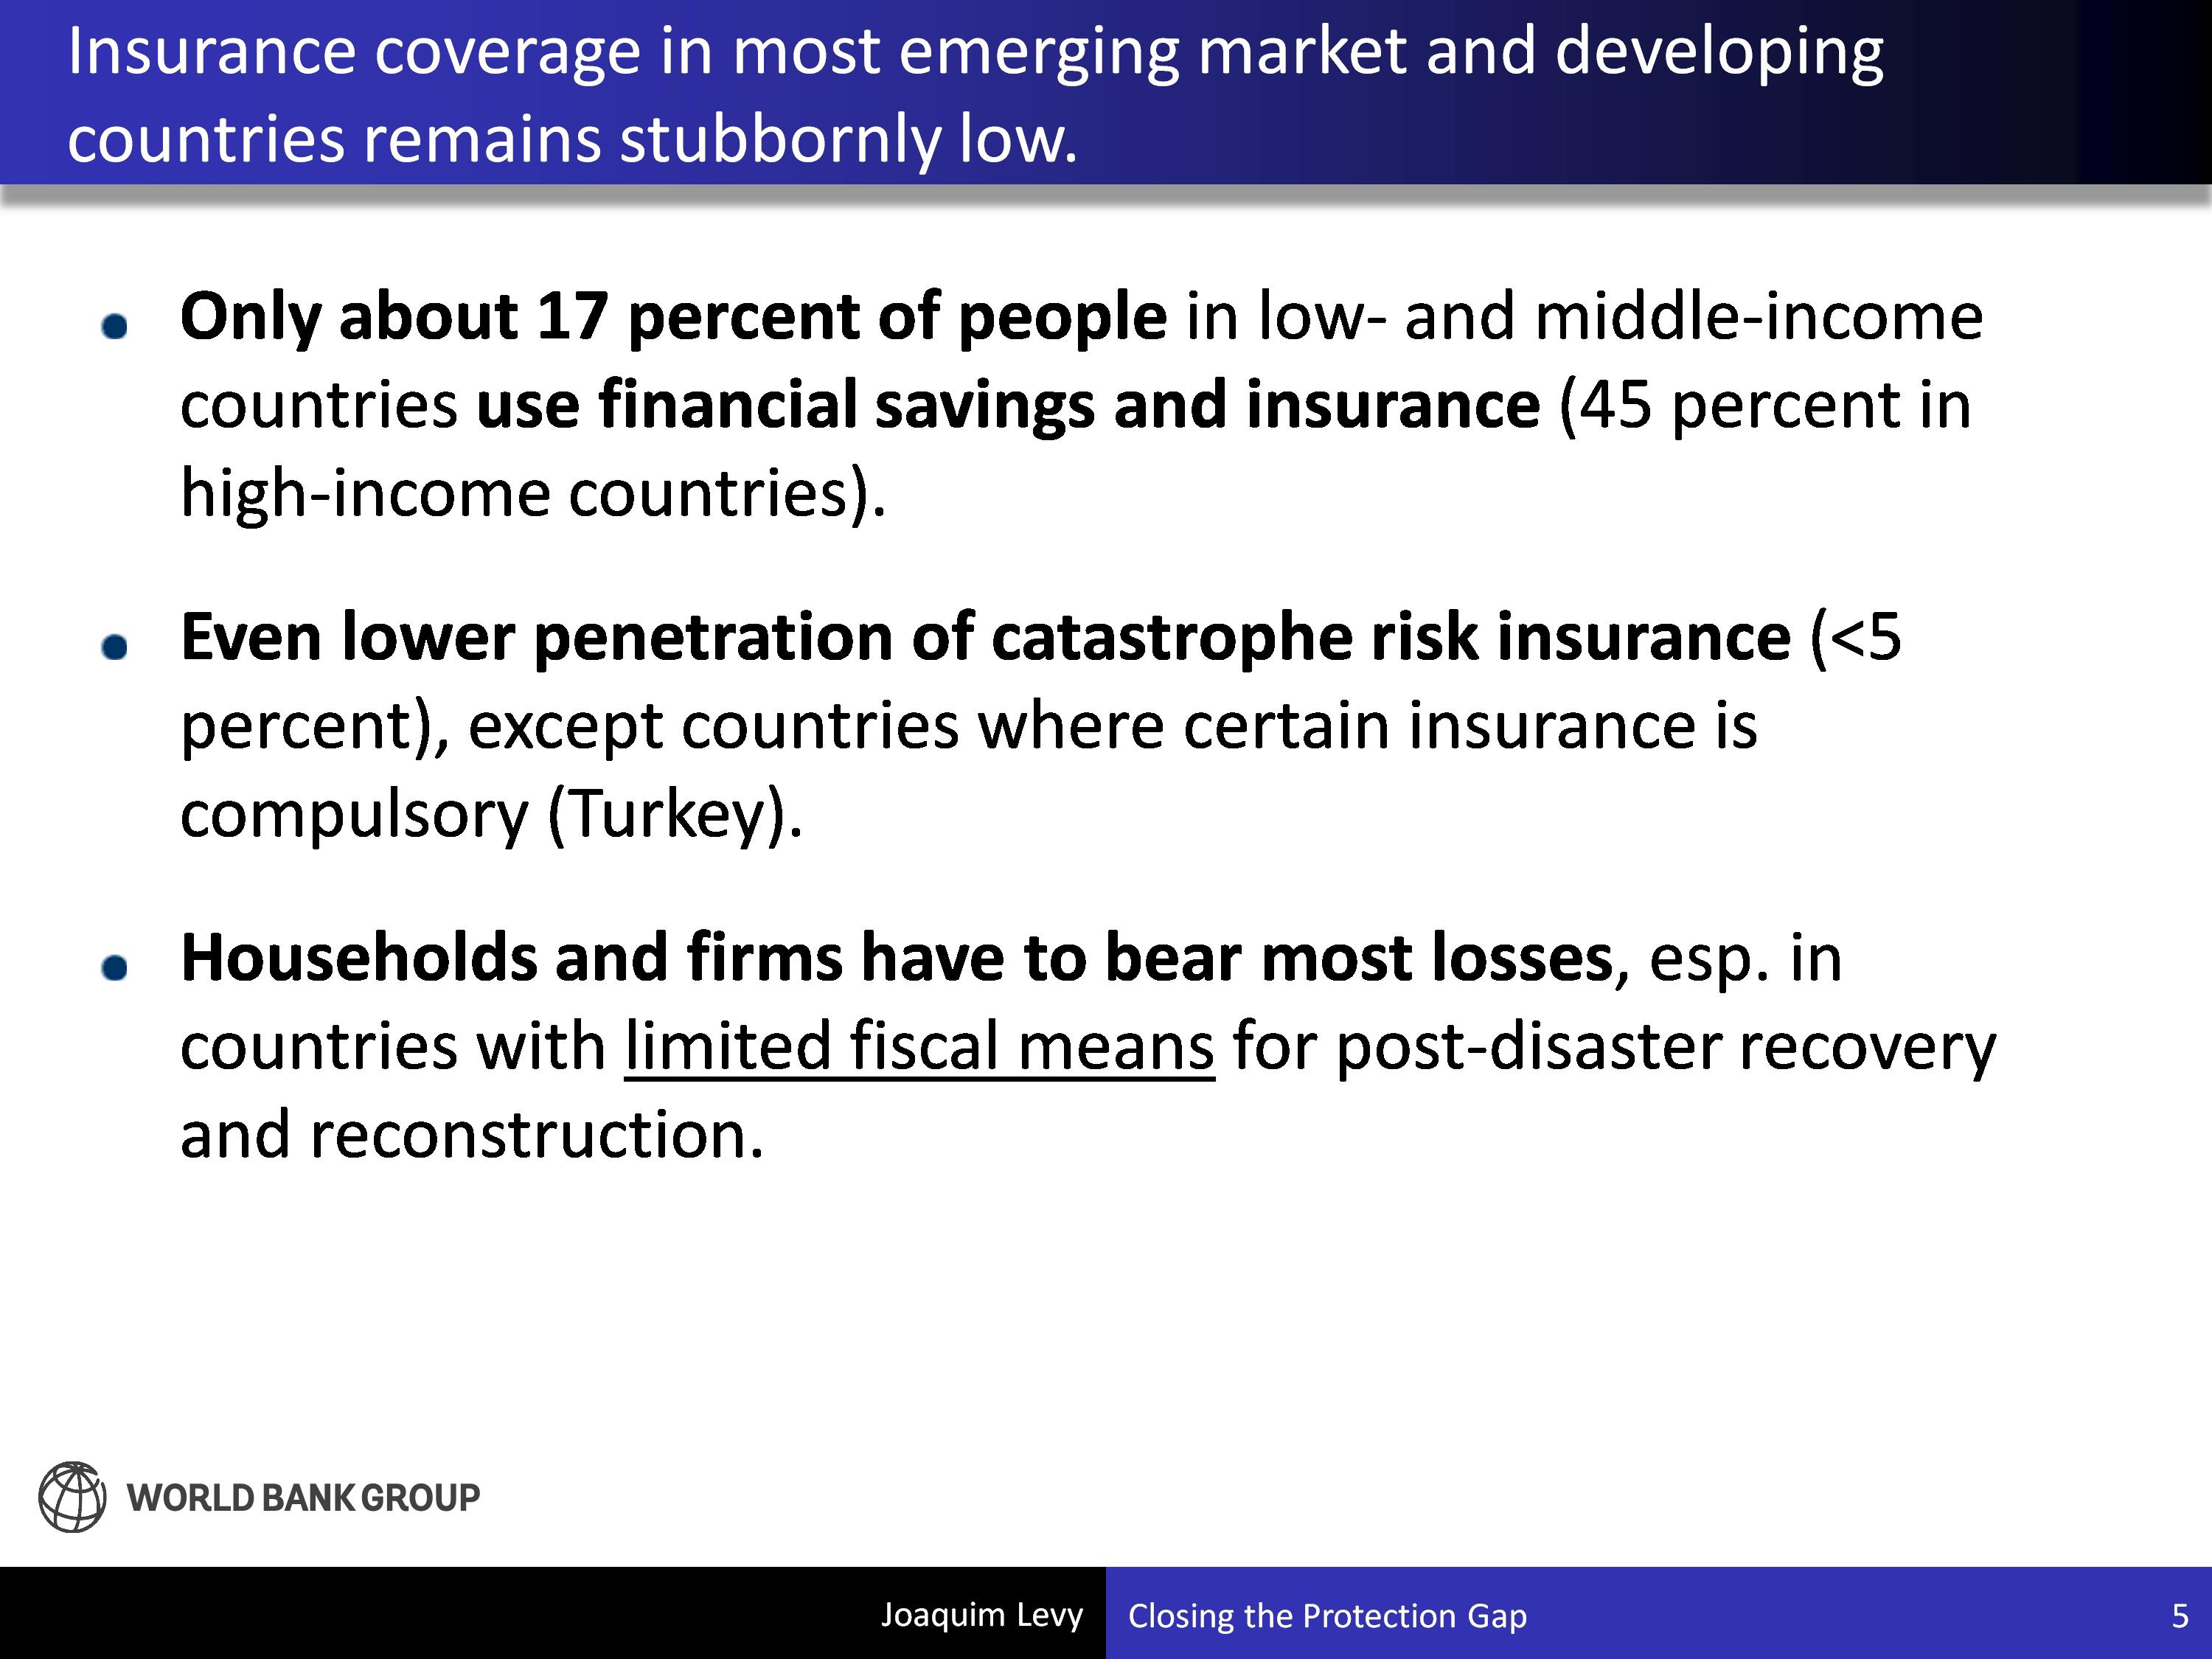 Insurance penetration in the world bank